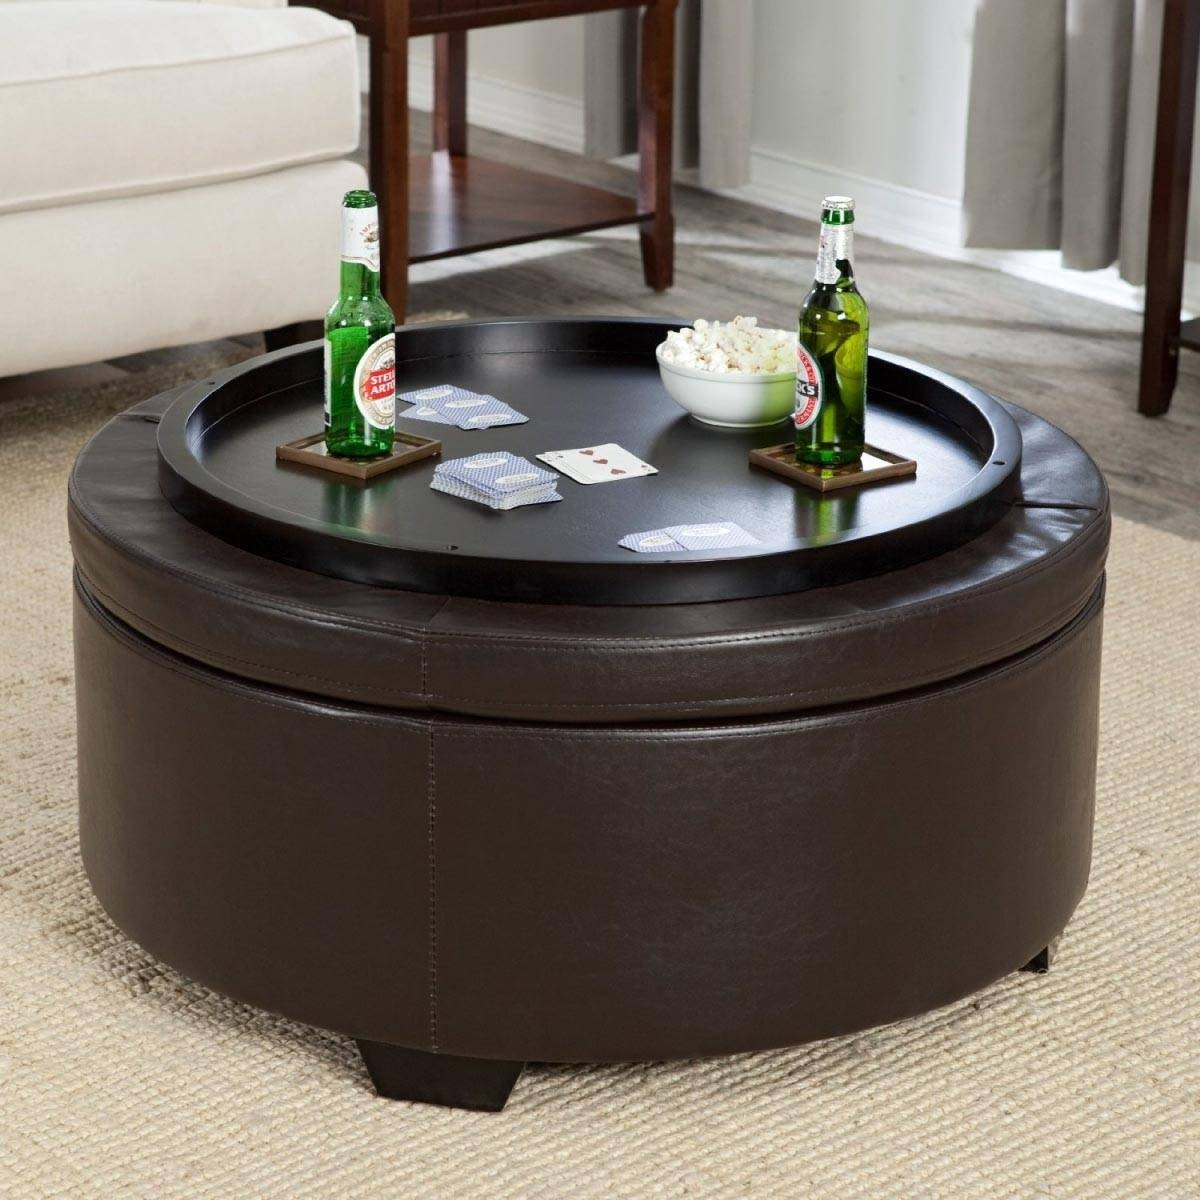 Corbett Coffee Table Storage Ottoman Round | Coffee Tables Decoration with Round Coffee Table Storages (Image 13 of 30)